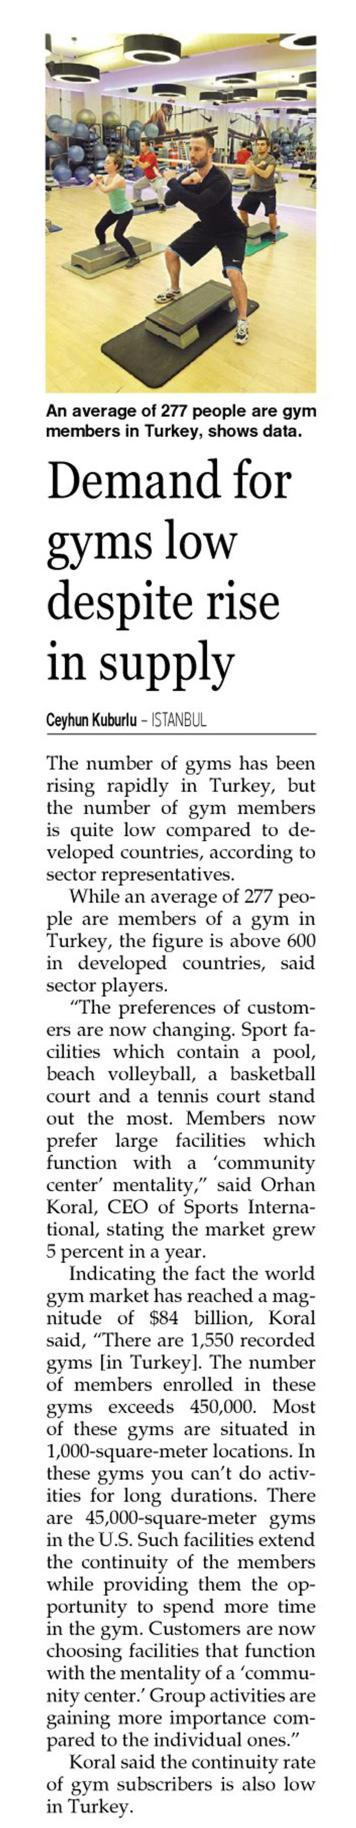 Demand for gyms low despite rise in supply